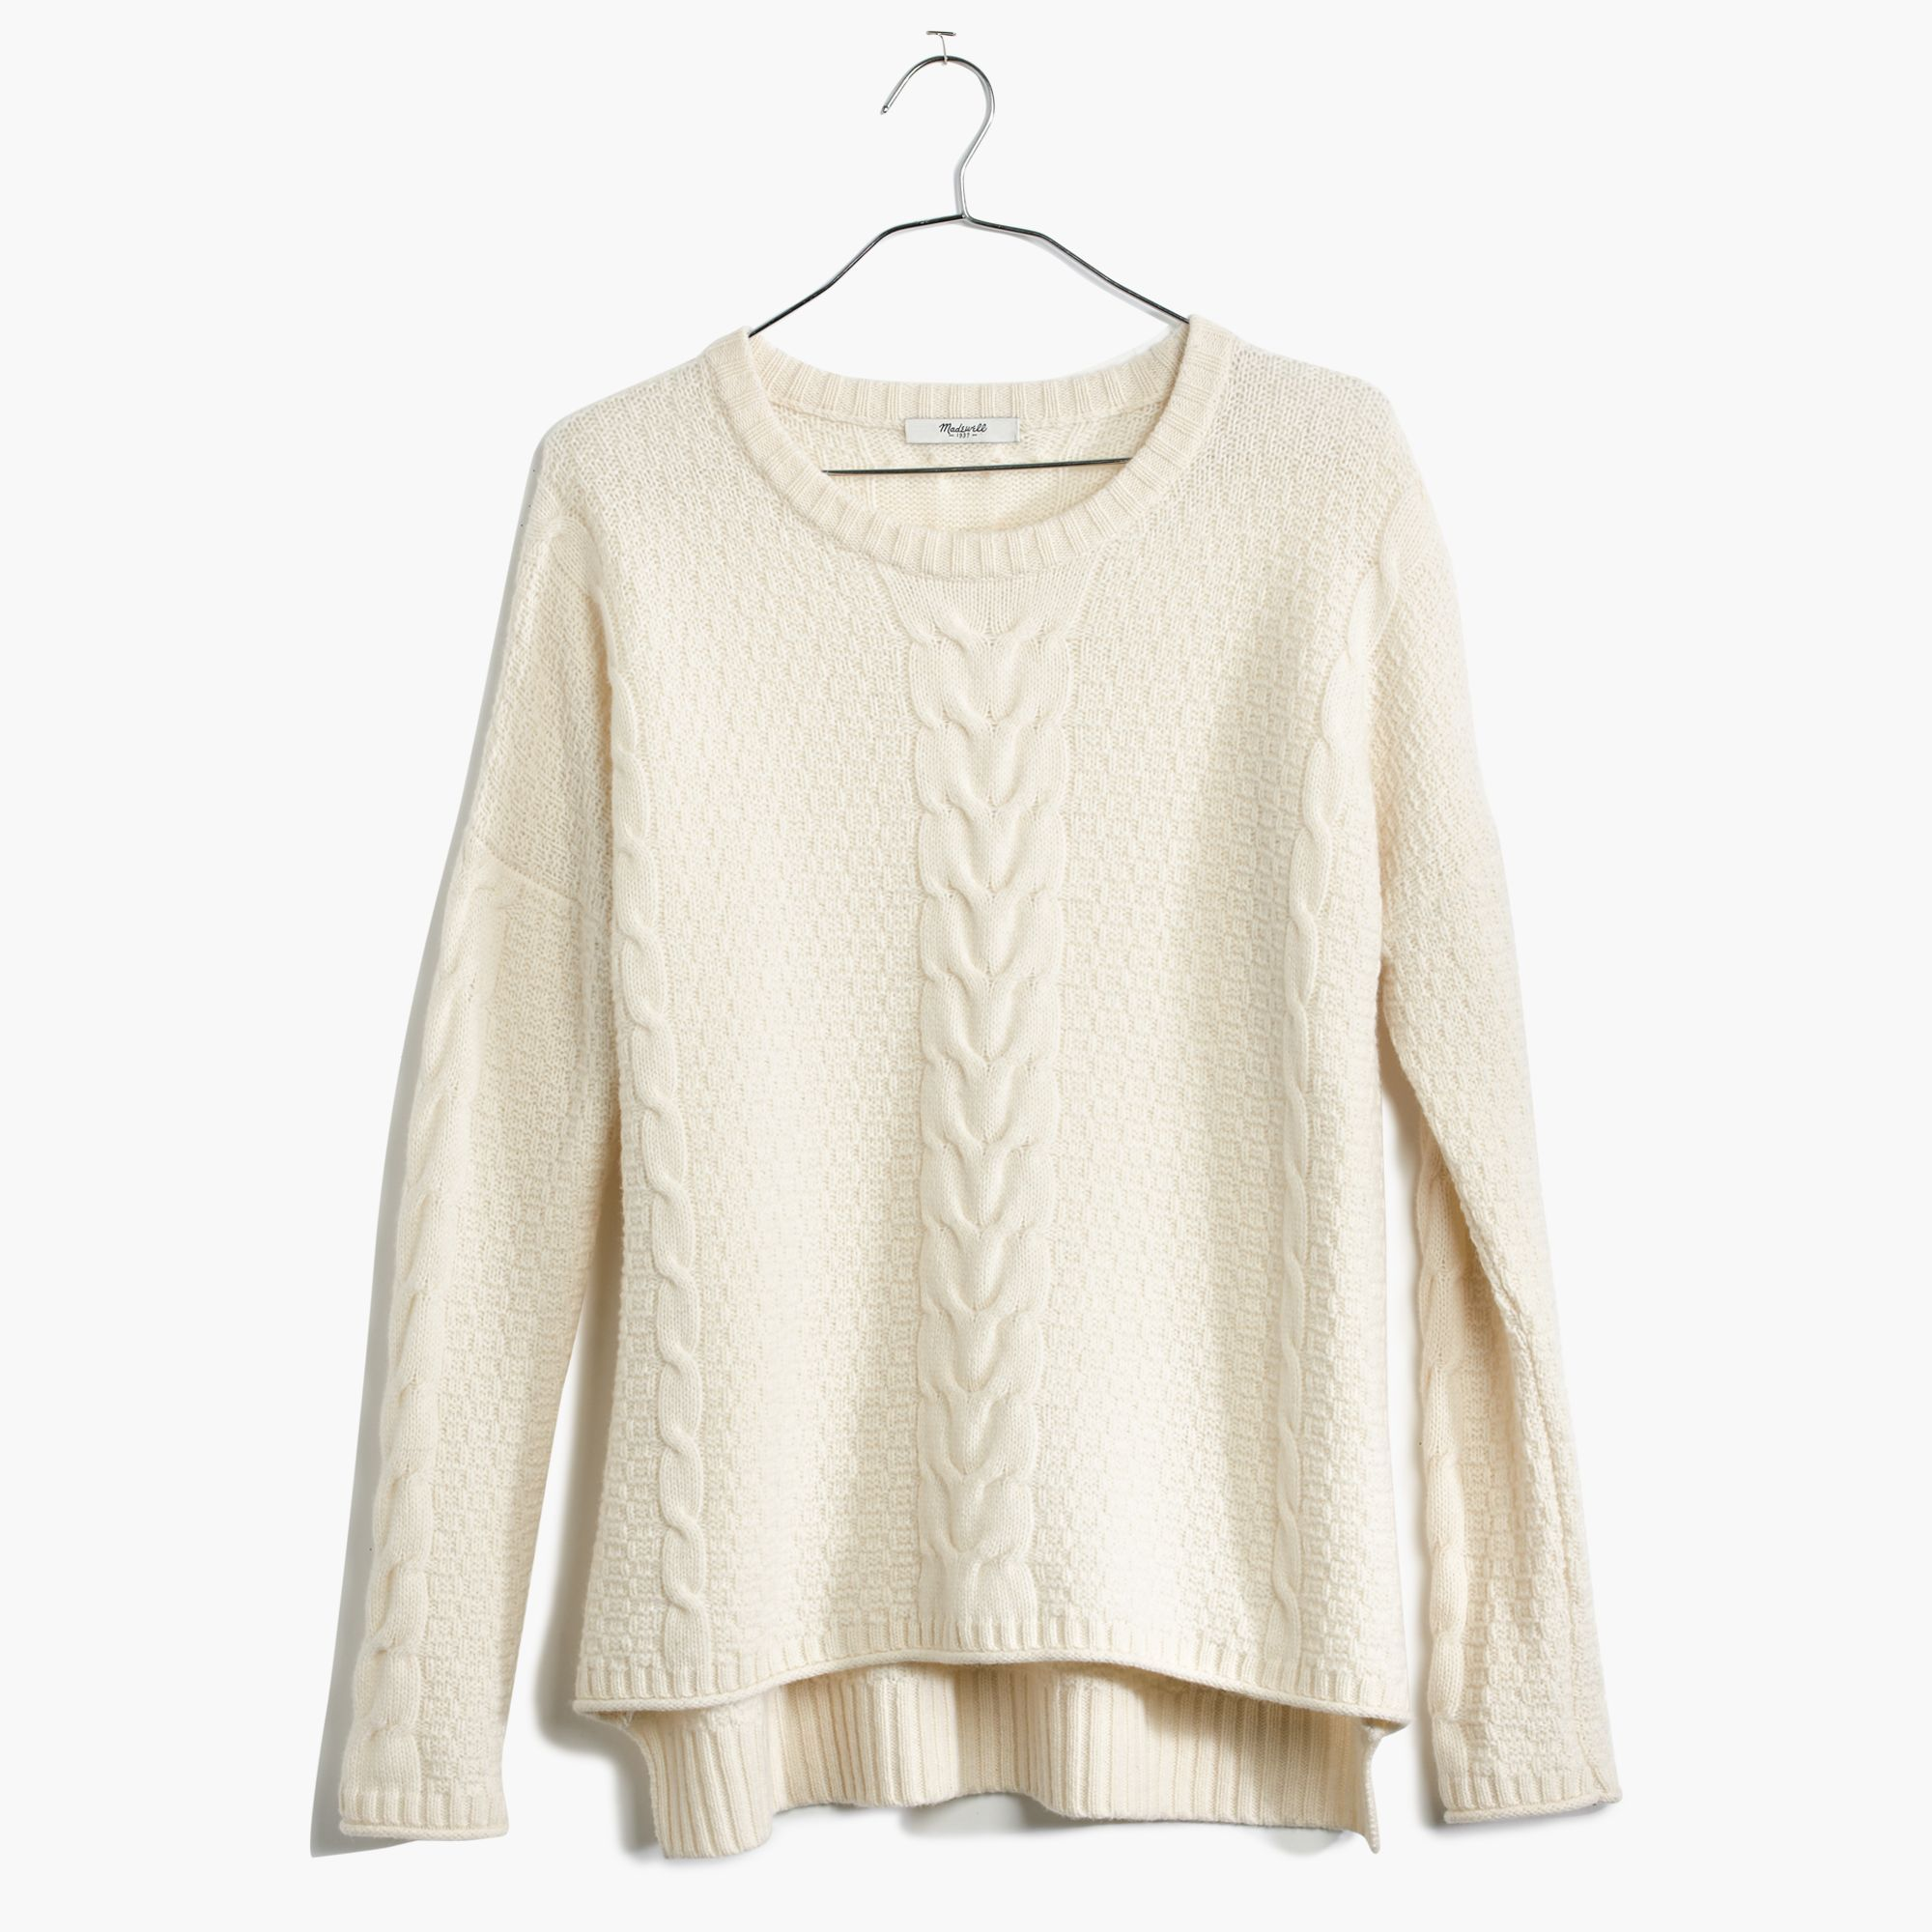 madewell-white-easy-cable-pullover-sweater-product-1-25612818-1-423306488-normal.jpeg